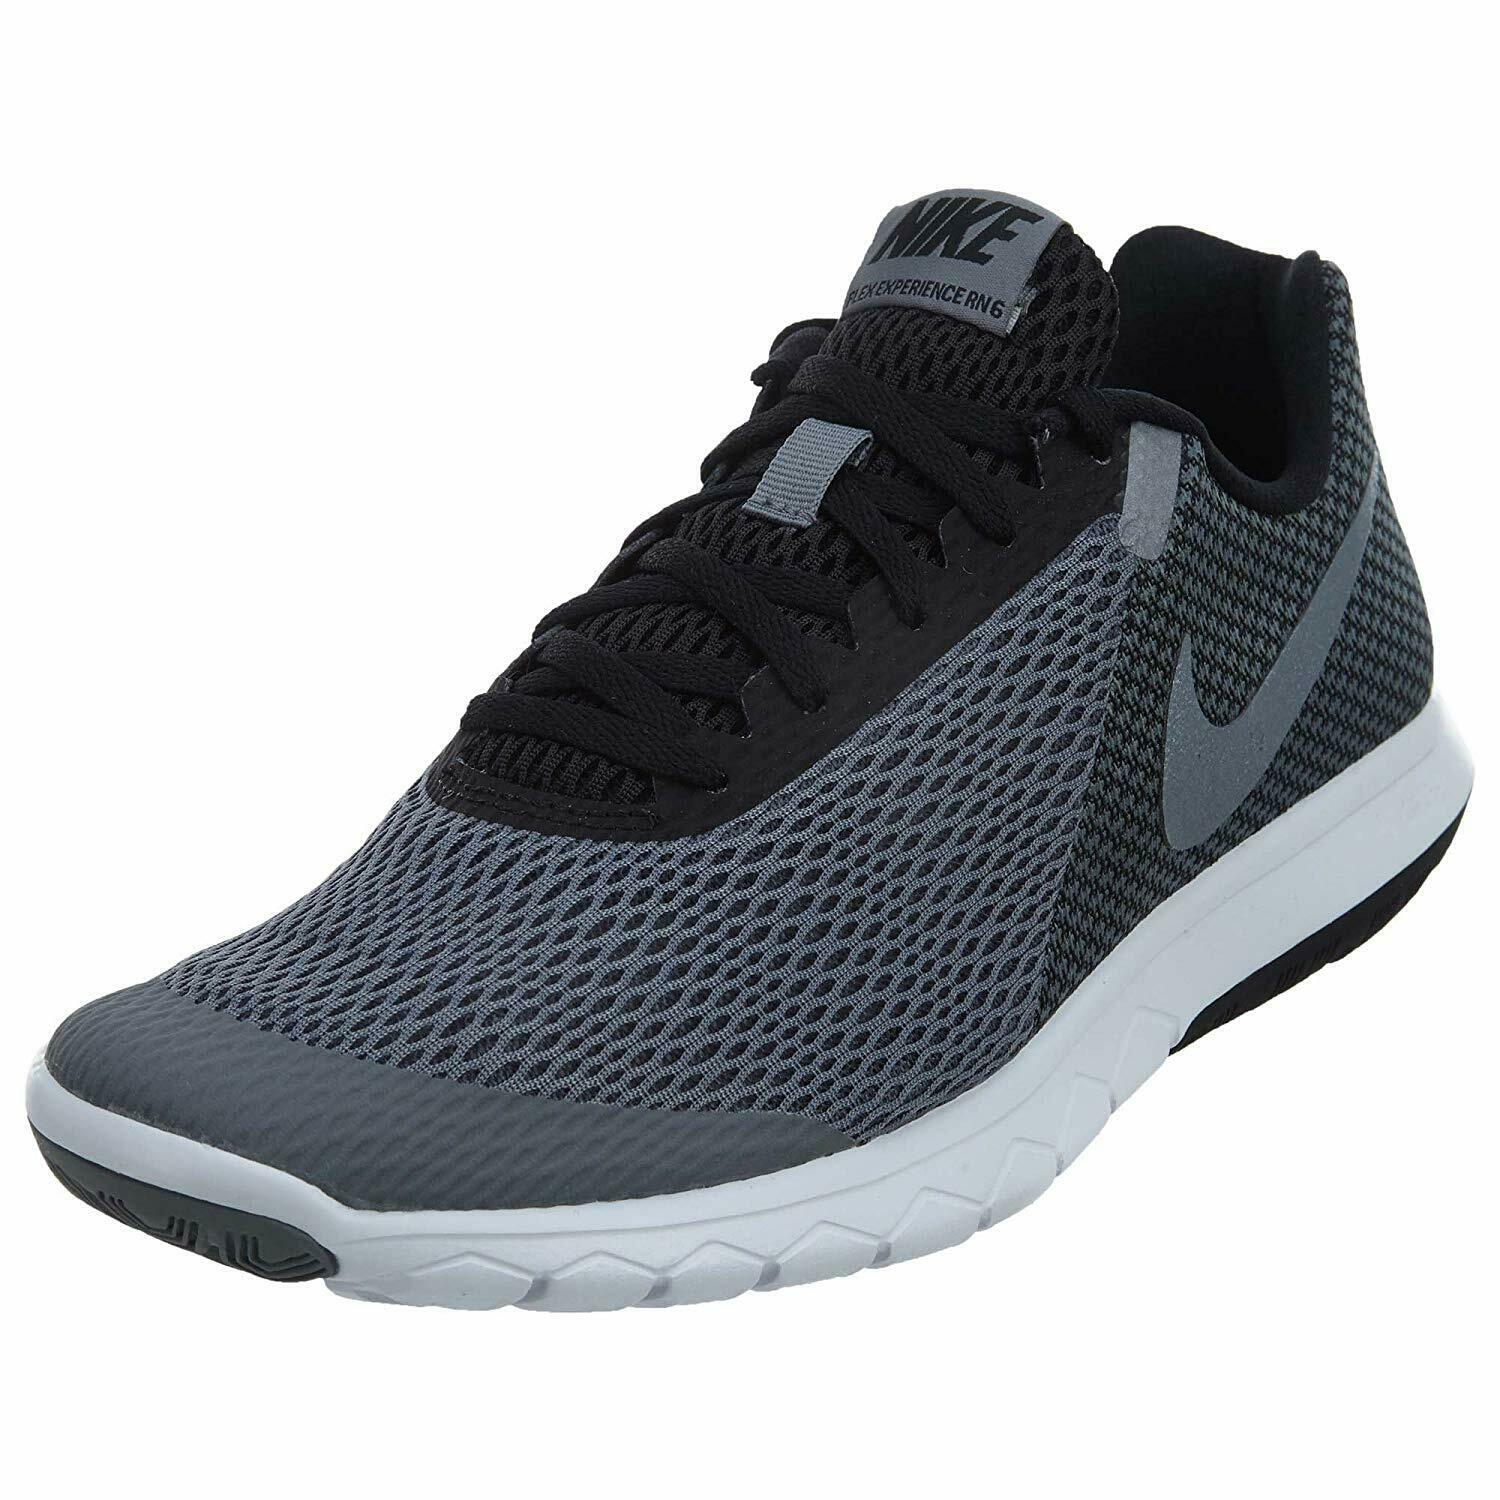 Men's Nike® Flex Experience RN 6 Grey Running shoes Size 12